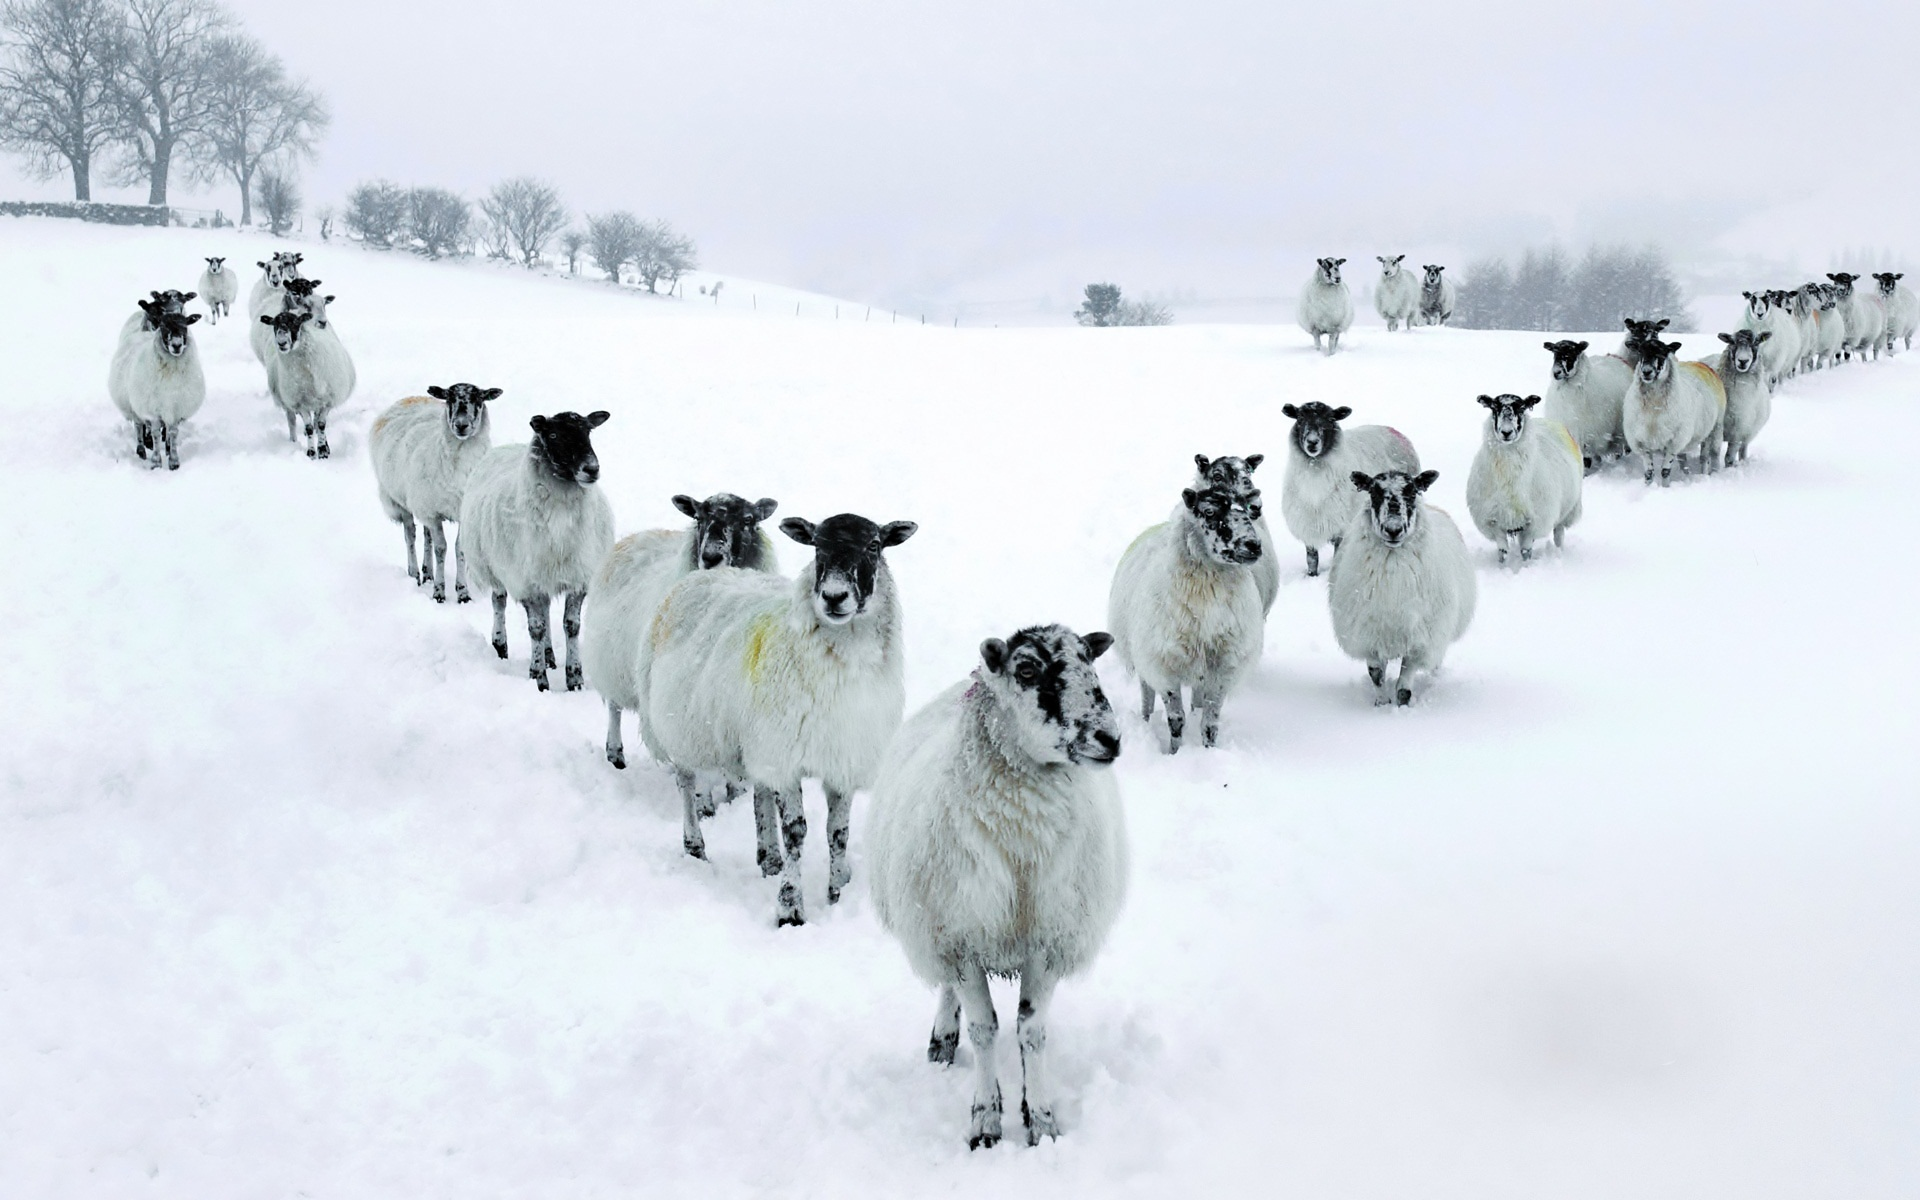 Sheep 9 Animals Minimalistic Wallpapers For Iphone: Winter Sheep In V Formation Full HD Wallpaper And